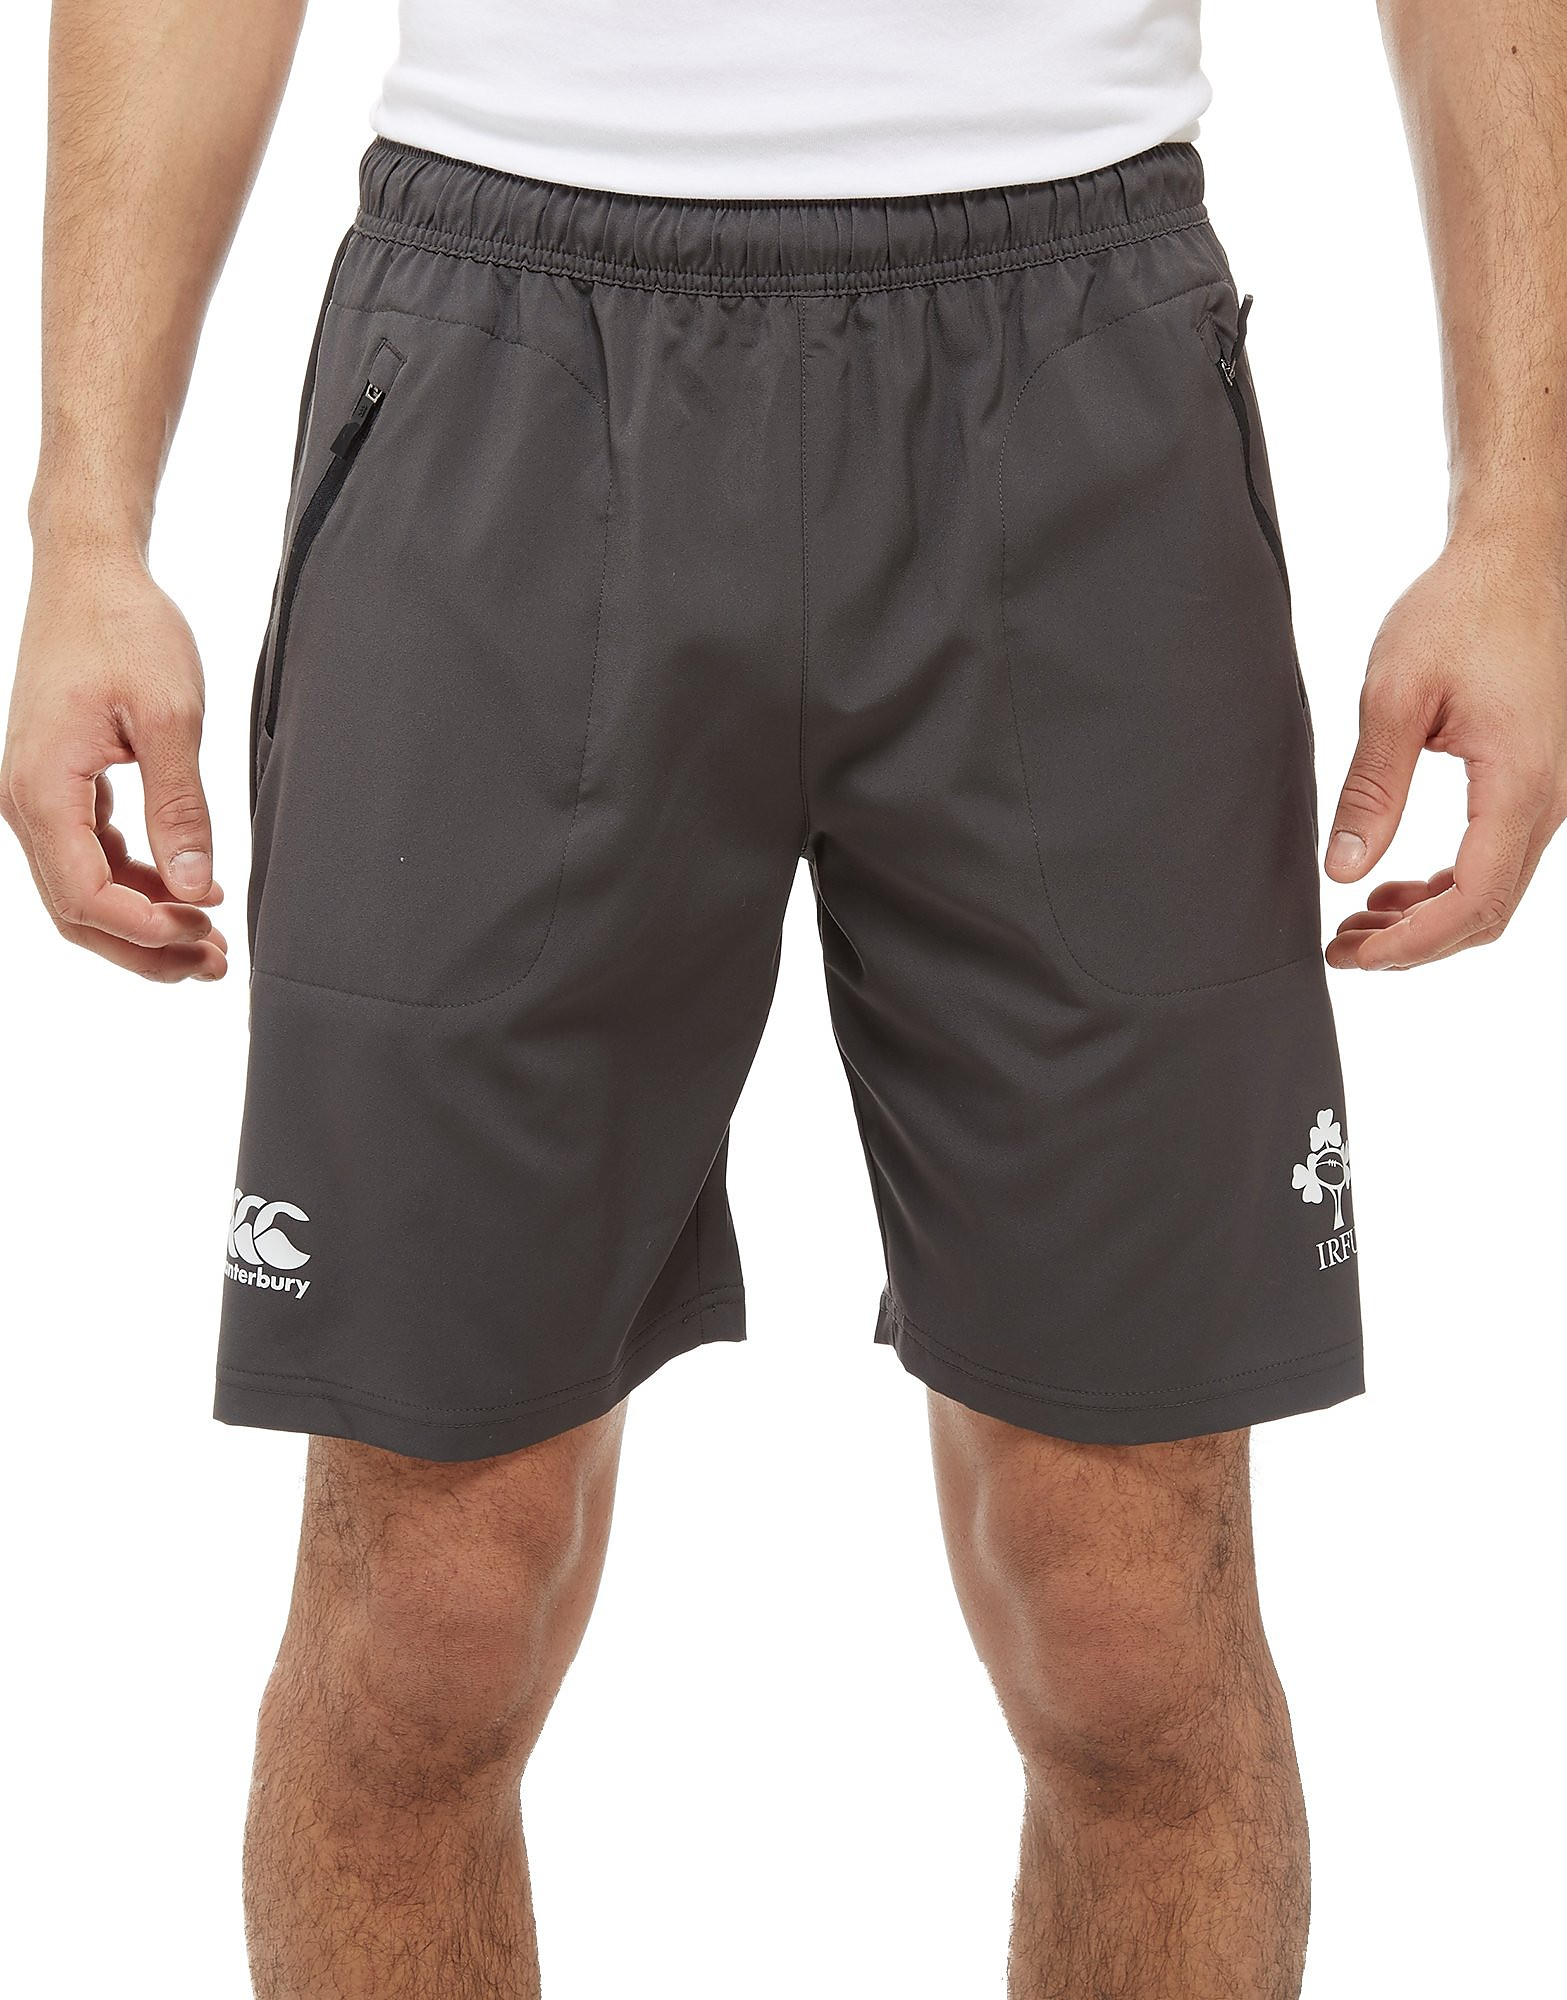 Canterbury Ireland RFU Woven Gym Shorts